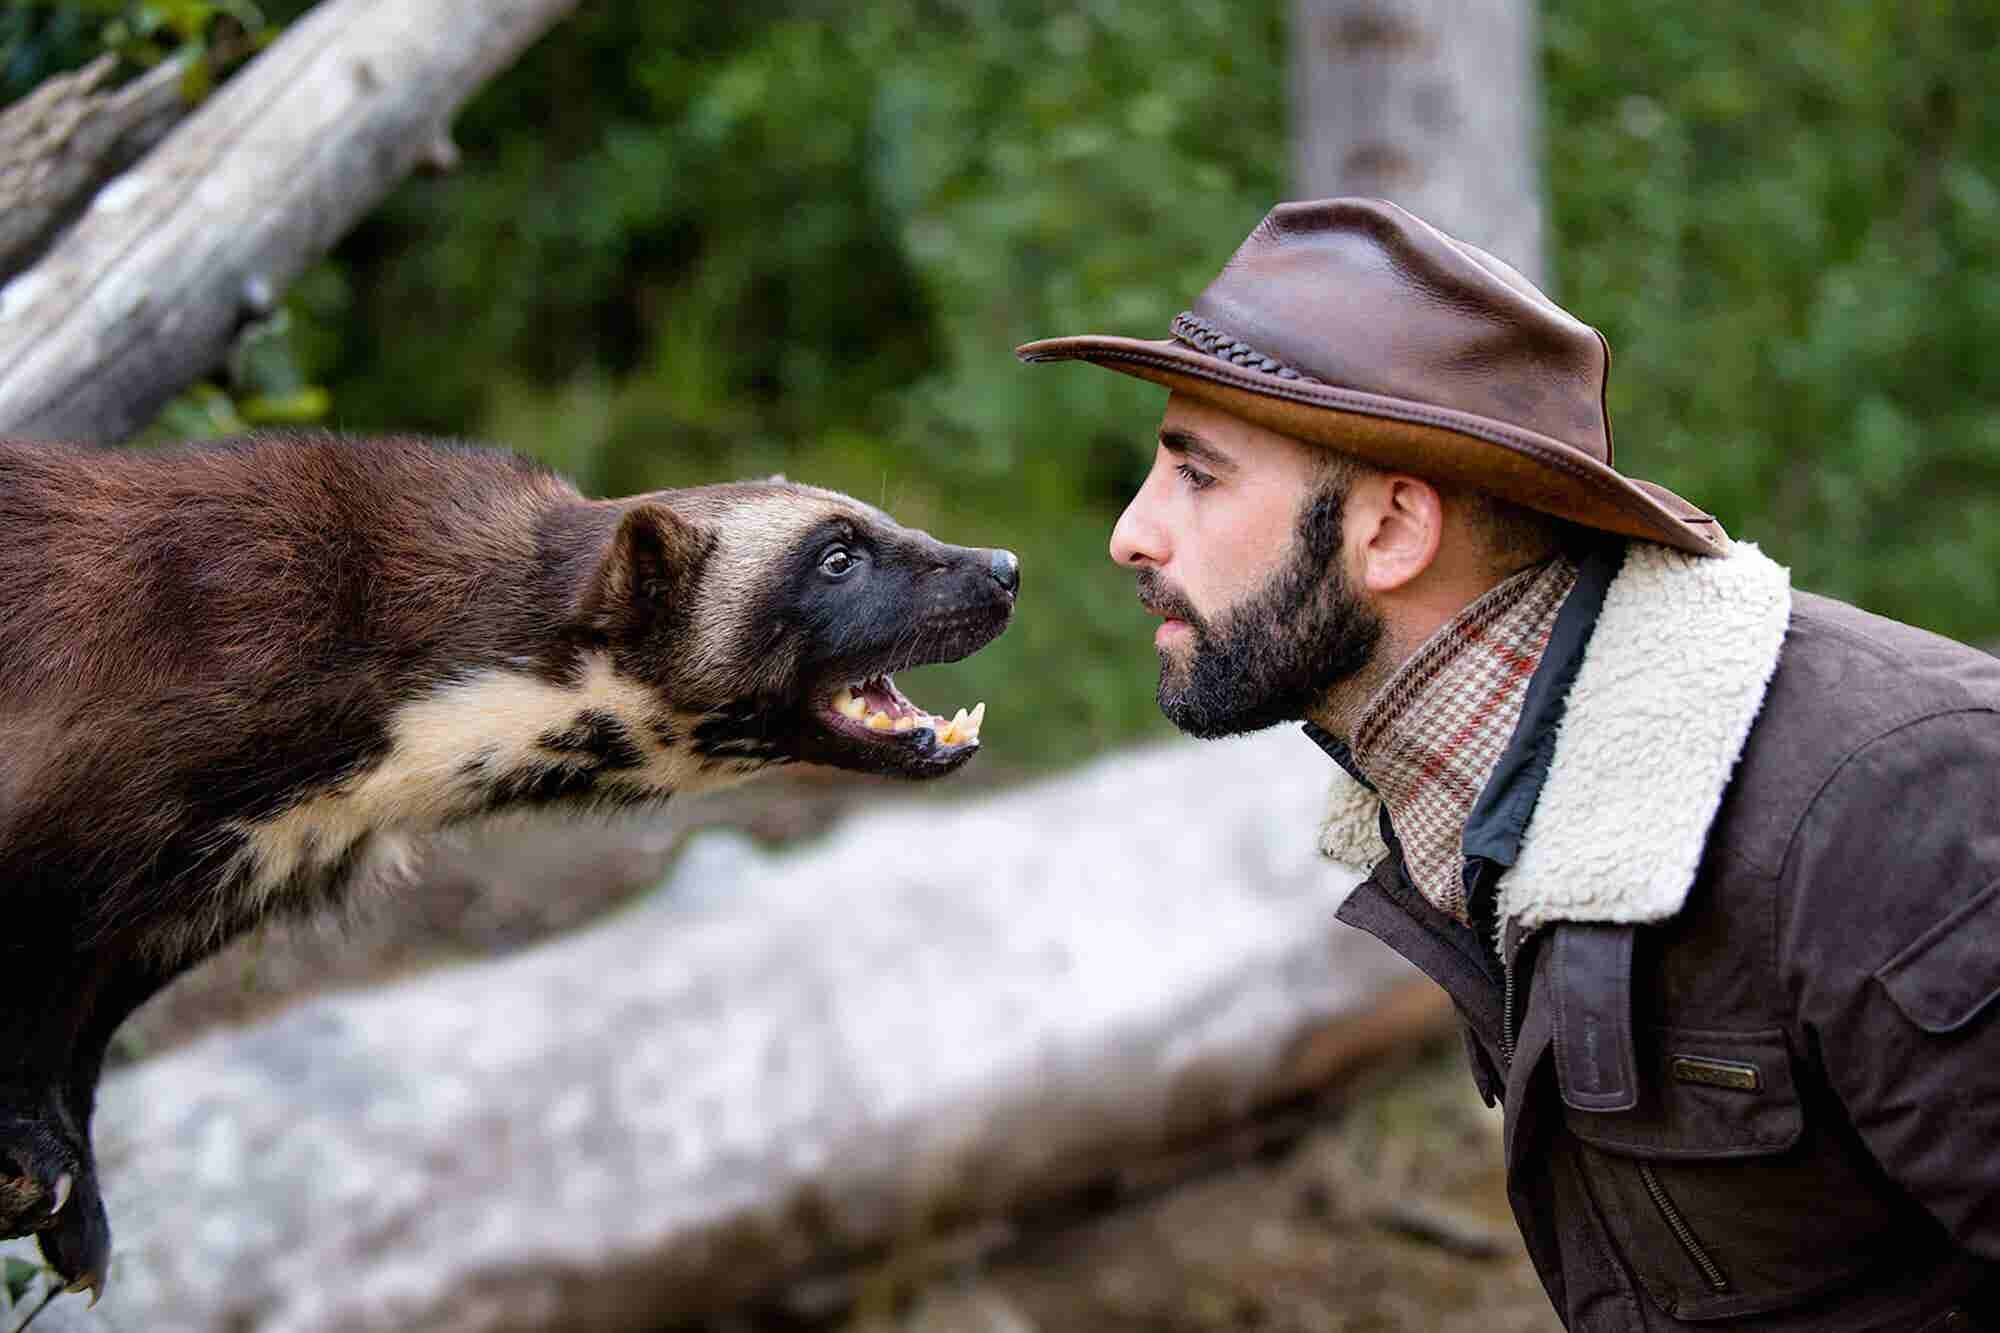 How YouTube's Top Wildlife Star Turned Getting Bitten by Animals Into Over 13 Million Subscribers